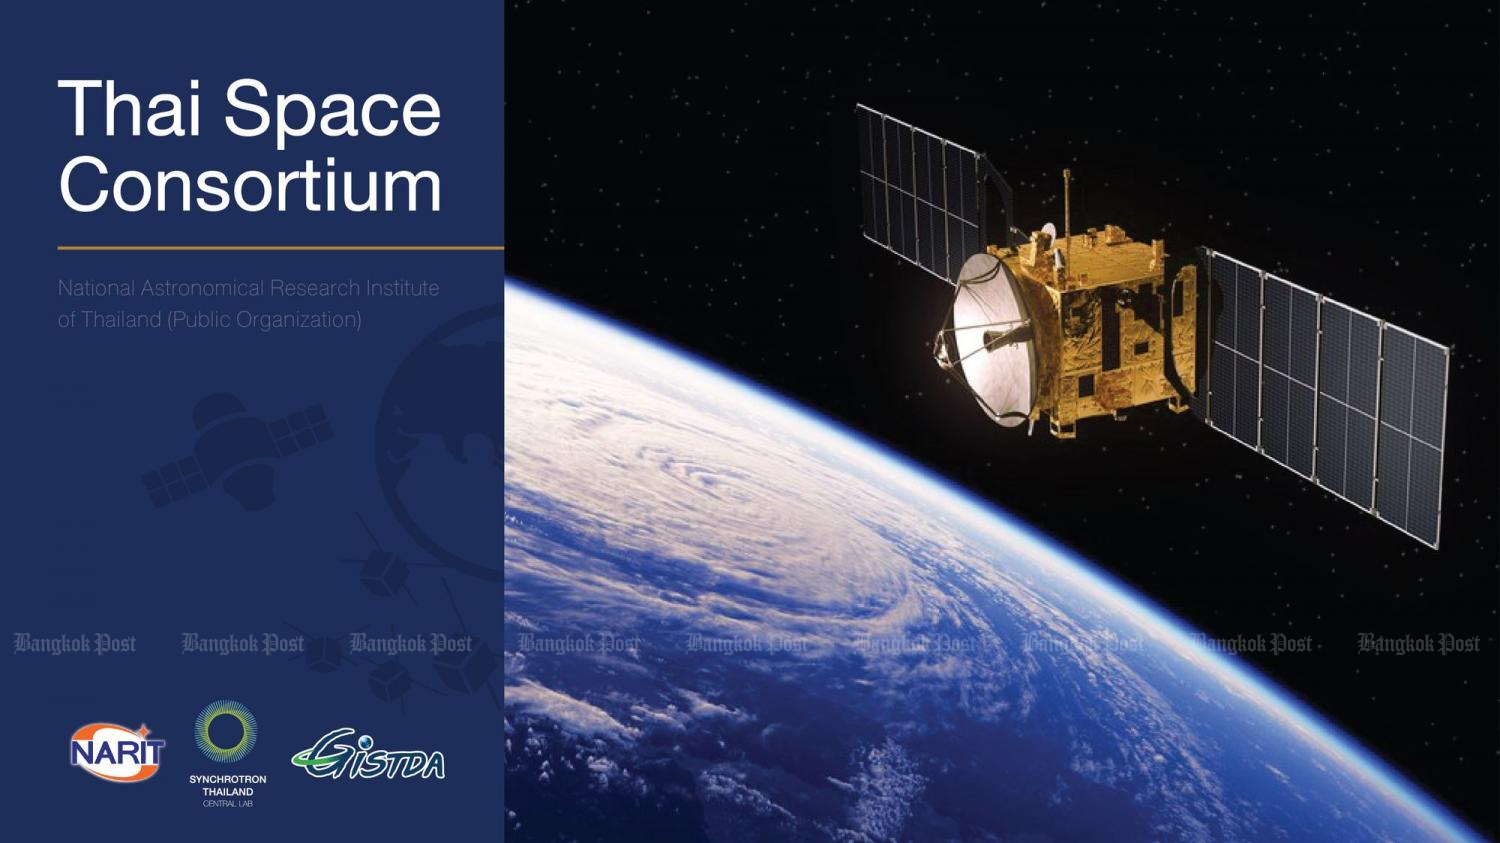 The Thai Space Consortium aims to build sustainable space technologies. (National Astronomical Research Institute of Thailand image)